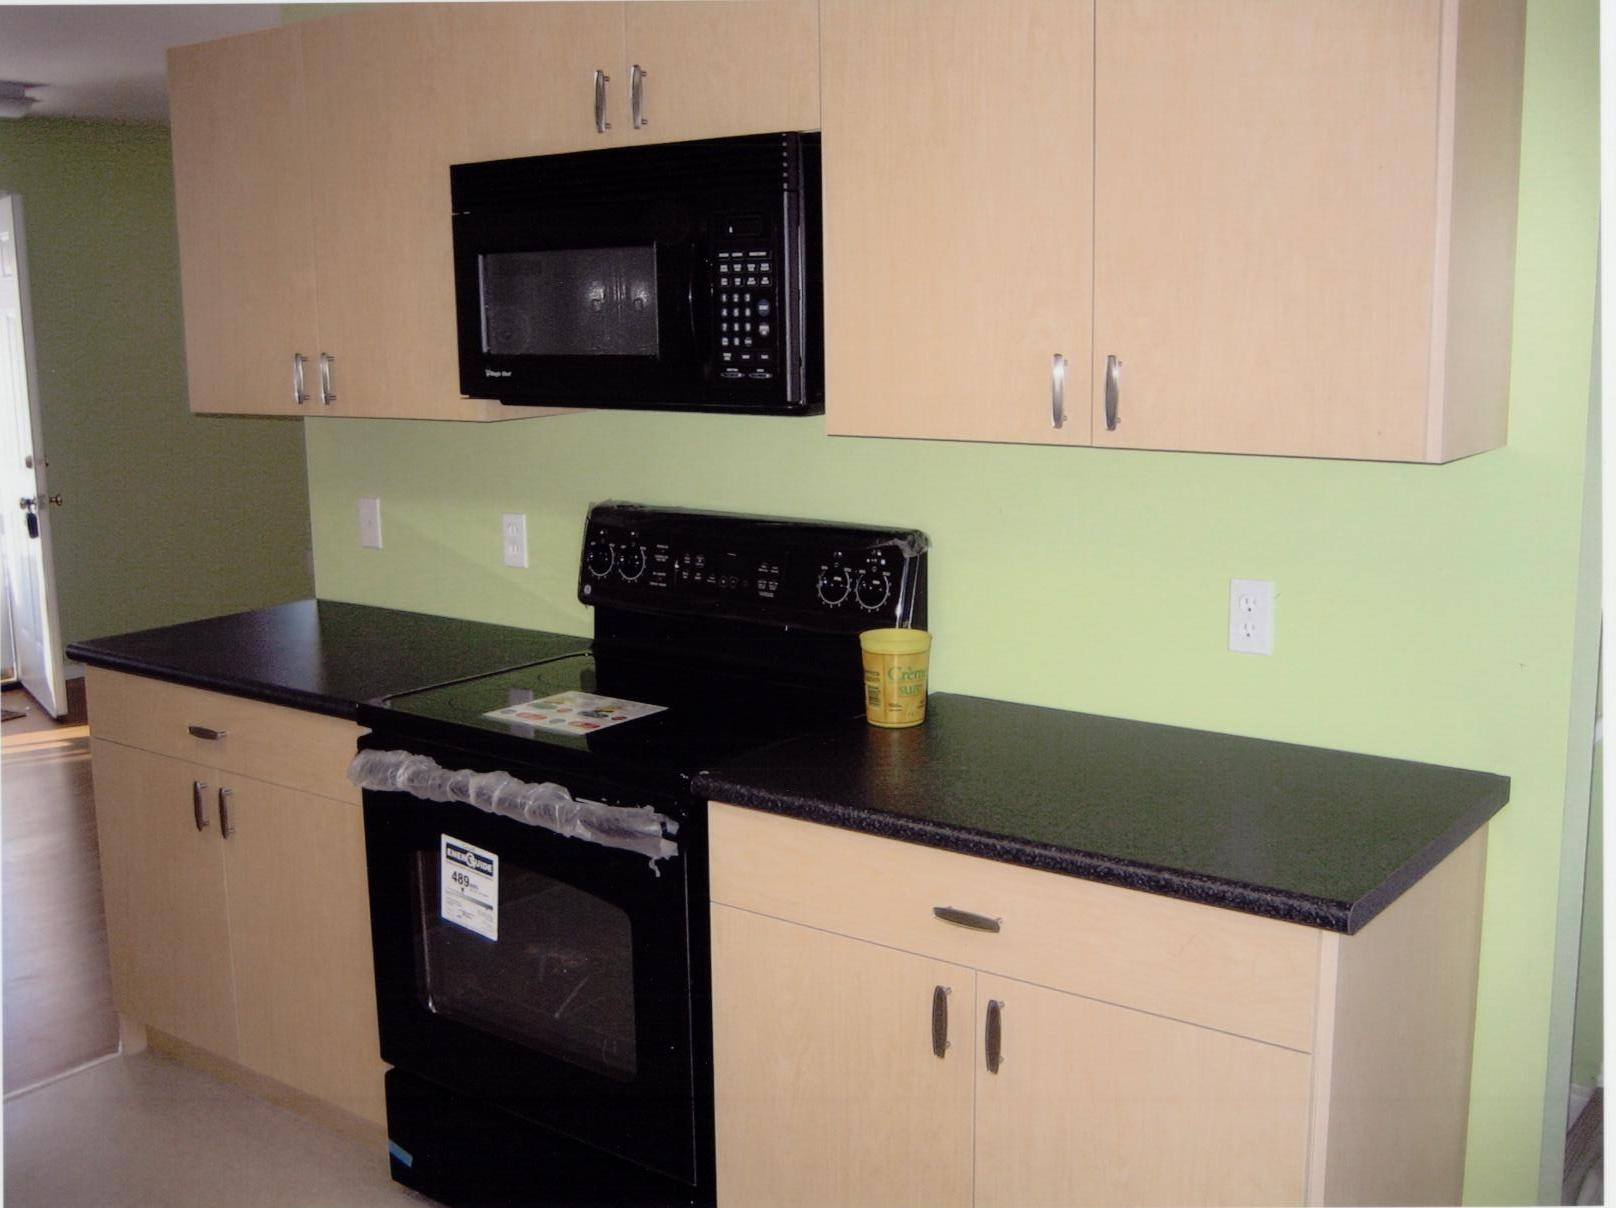 Maple Melamine Kitchen Cabinets Vs Wood Maple Melamine Kitchen